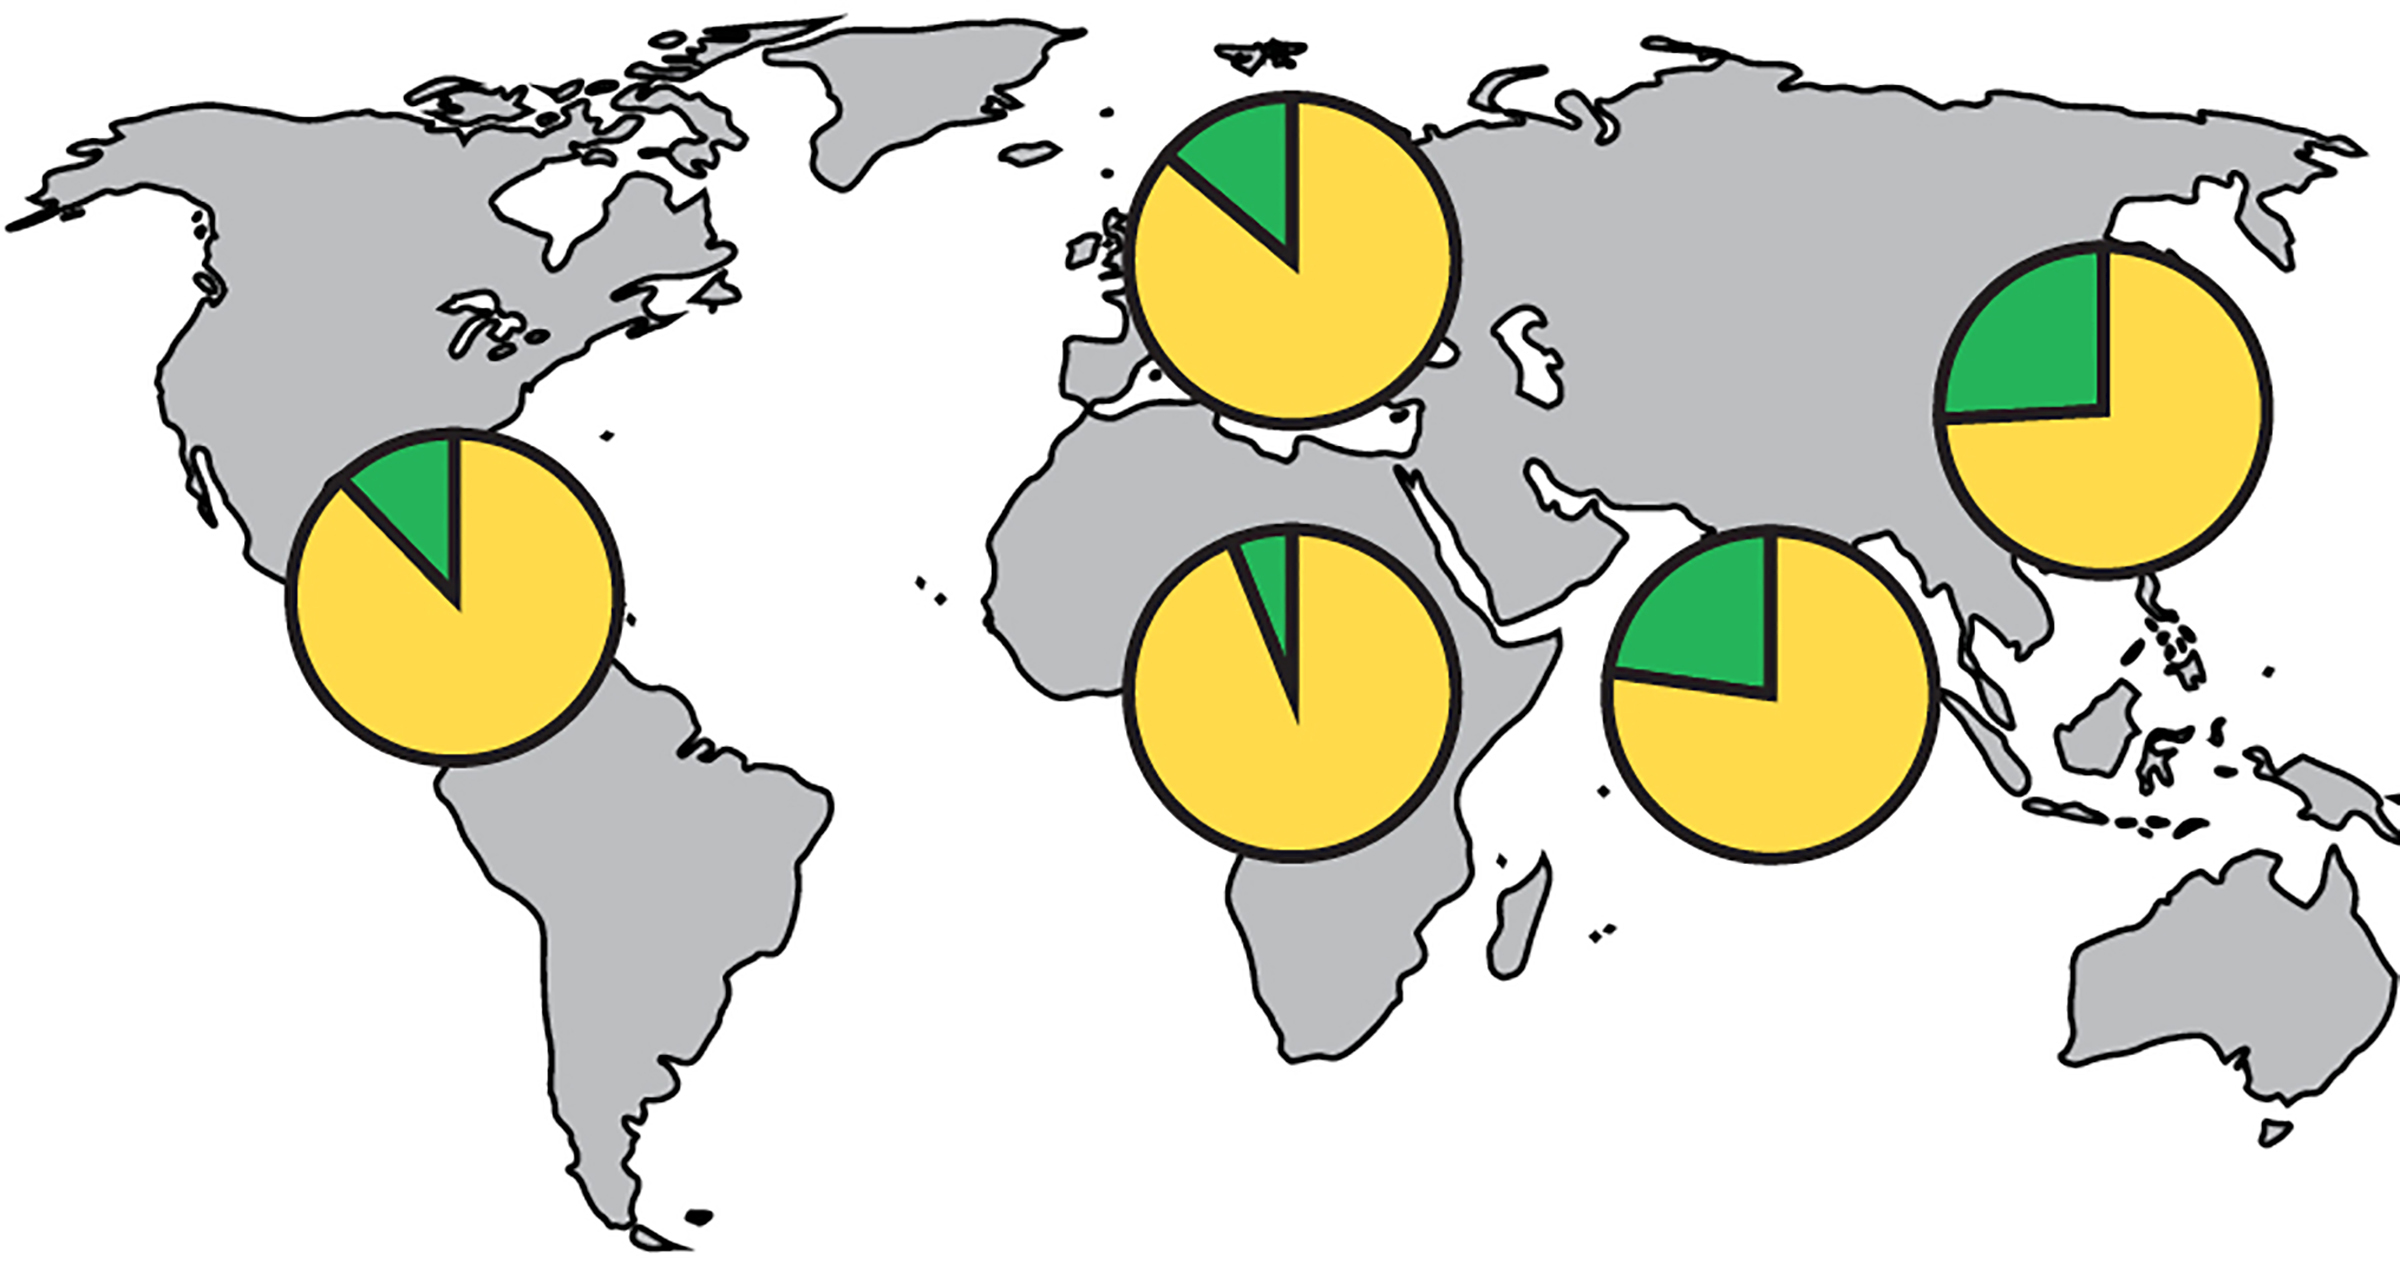 DNA from up to 25% of the world's populations (green) show traces of an ongoing, 40-million year battle between primates and bacterial pathogens that cause infectious diseases.